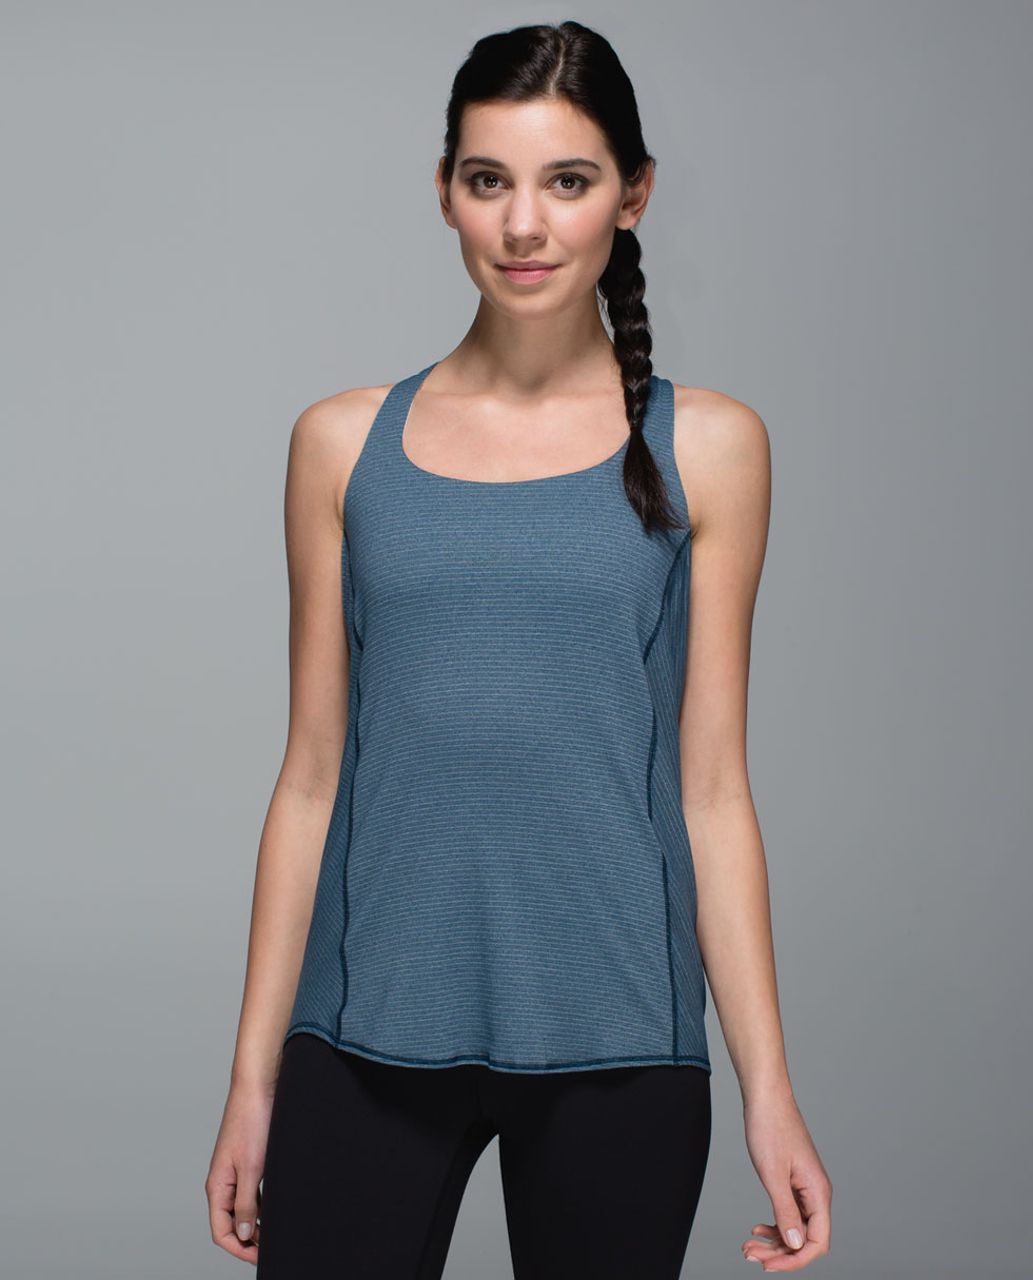 Lululemon Wild Tank - Heathered Alberta Lake / Pebble Print Parfait Pink Alberta Lake